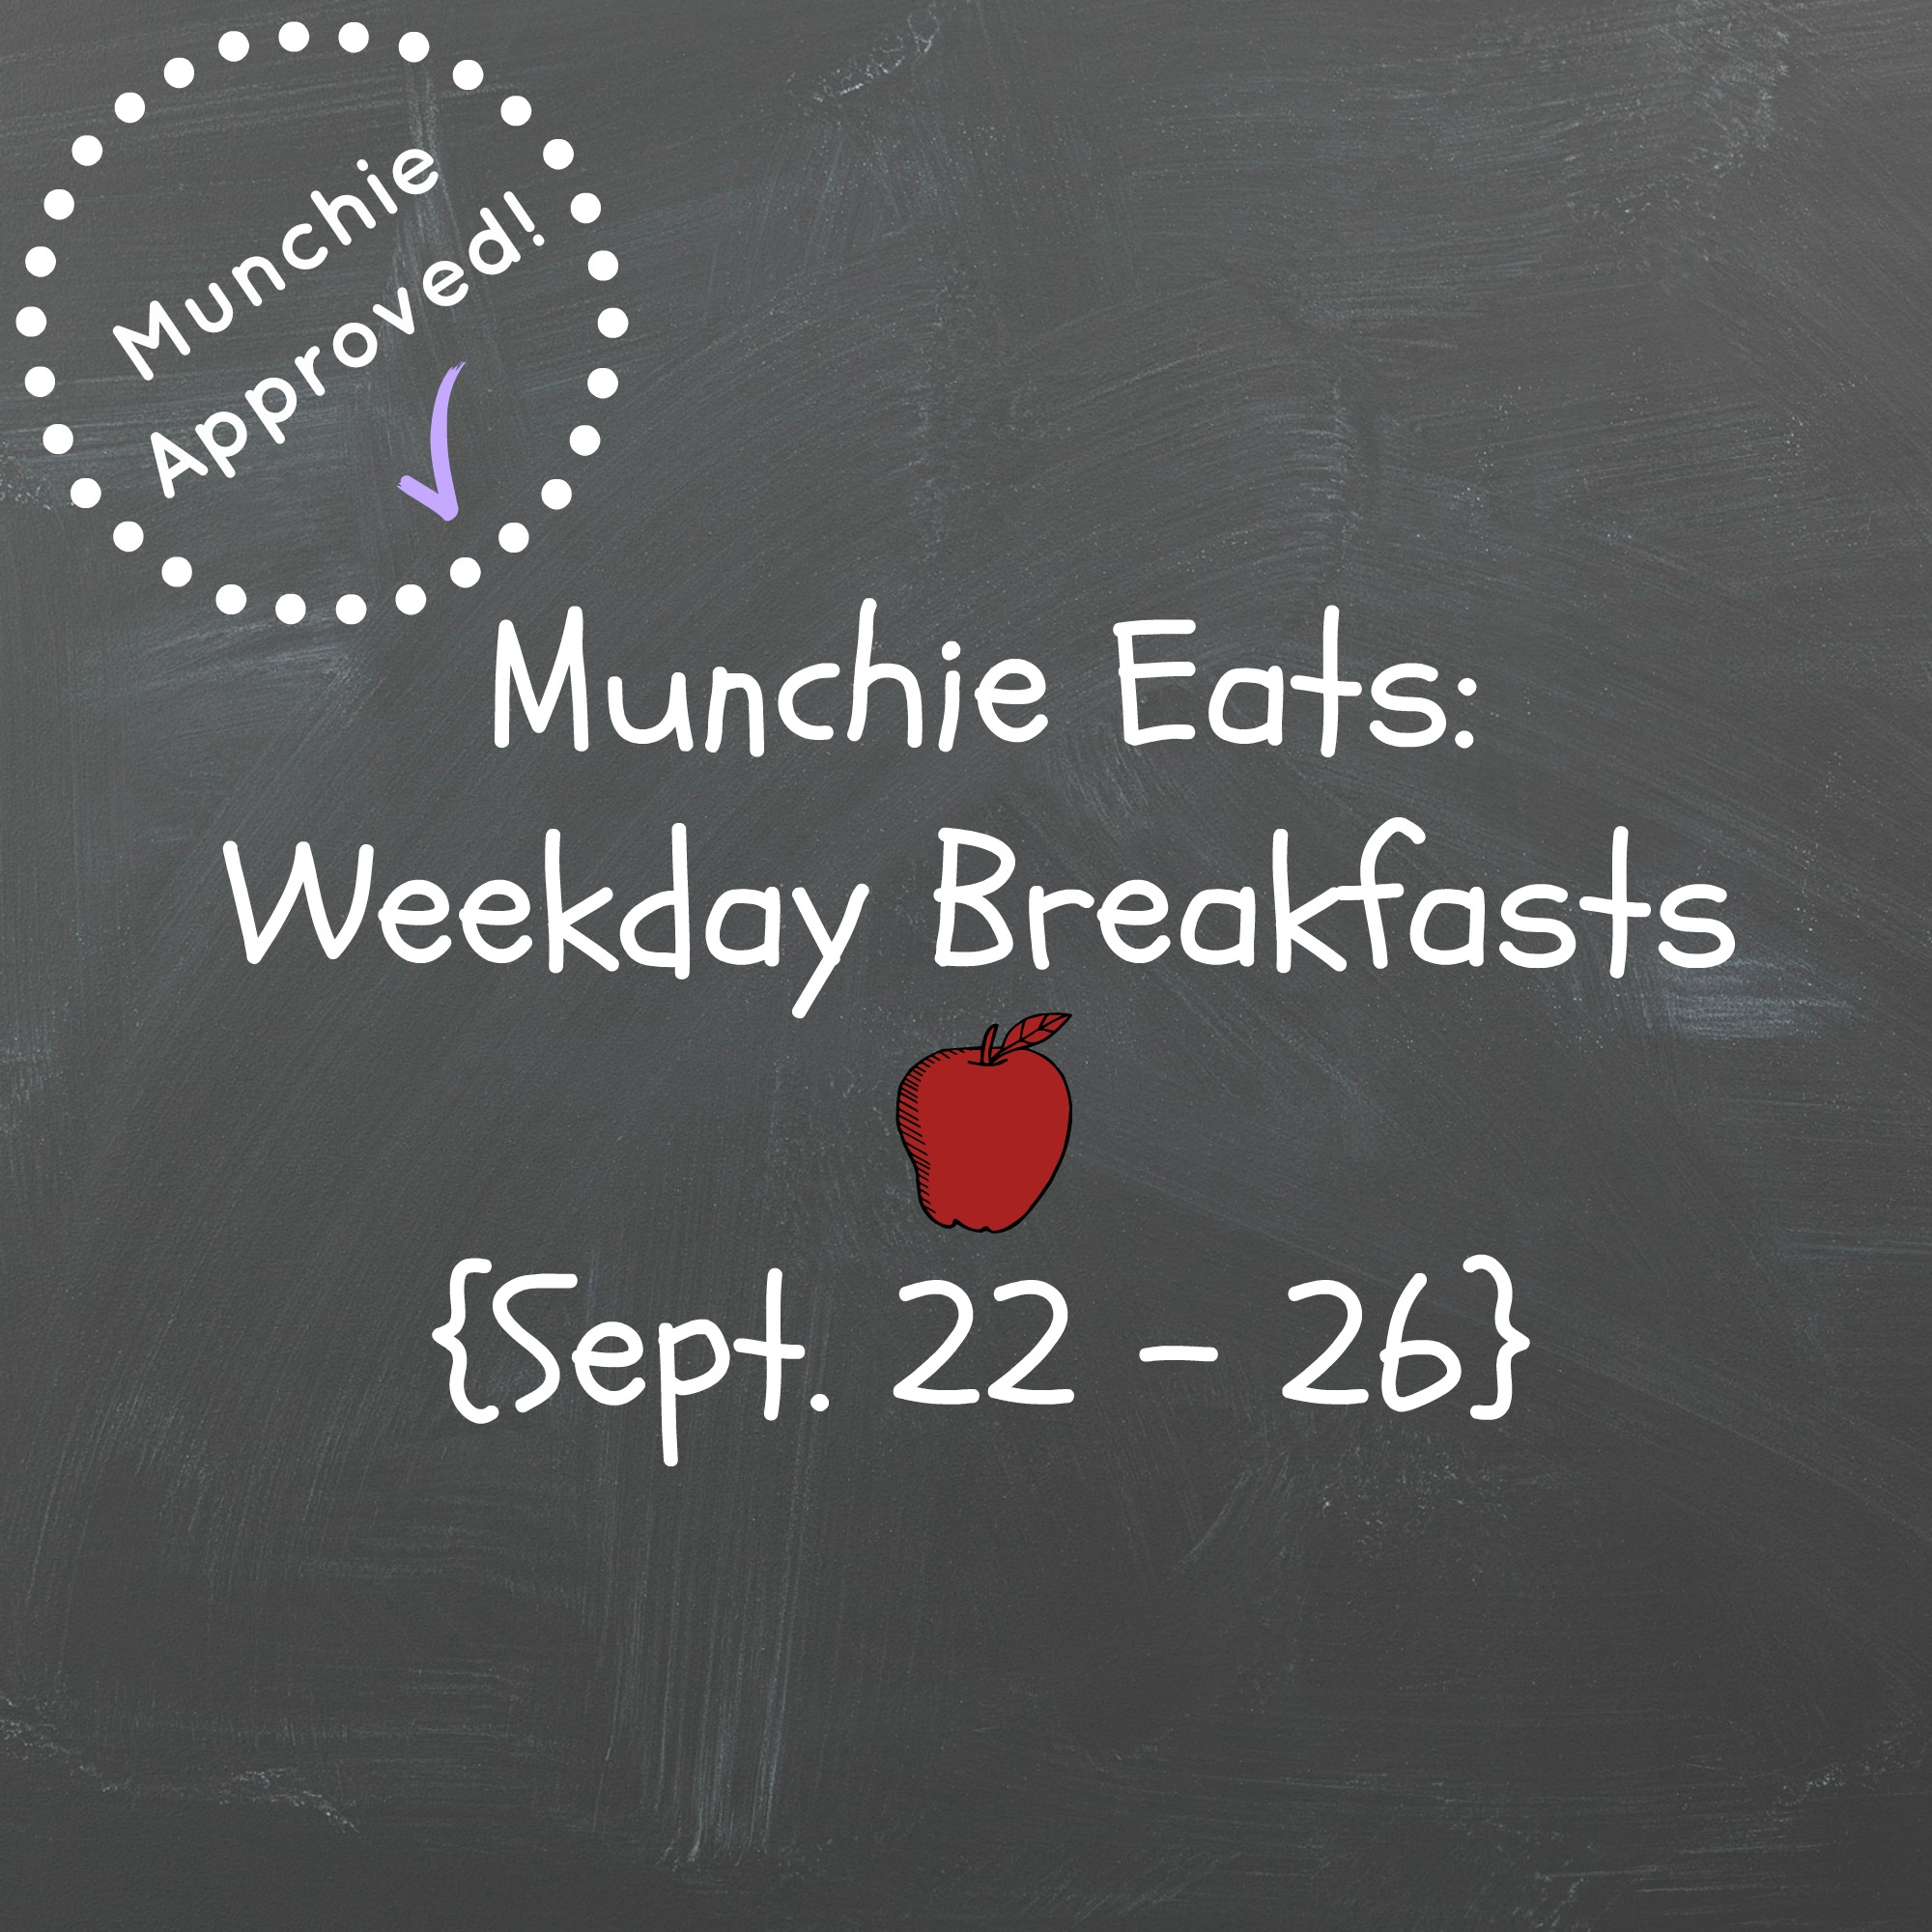 Munchie Eats Weekday Breakfasts Sept 22 _ 26 2014